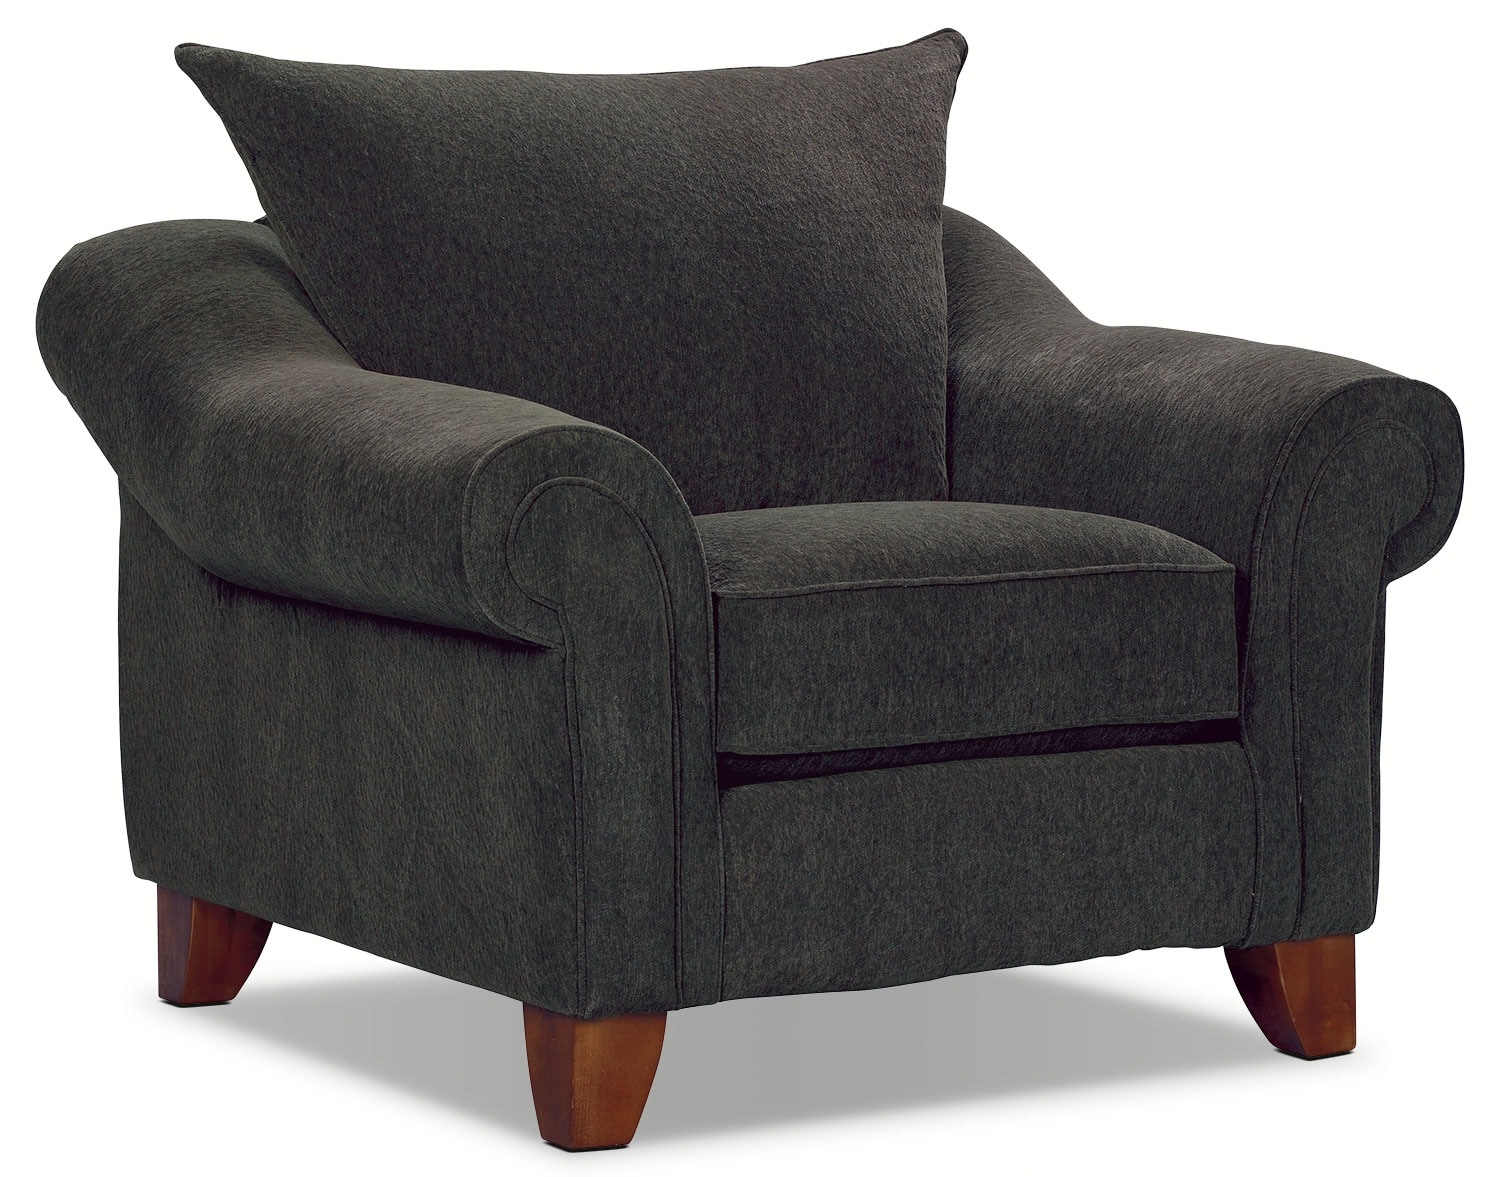 Reese Chenille Chair - Dark Grey